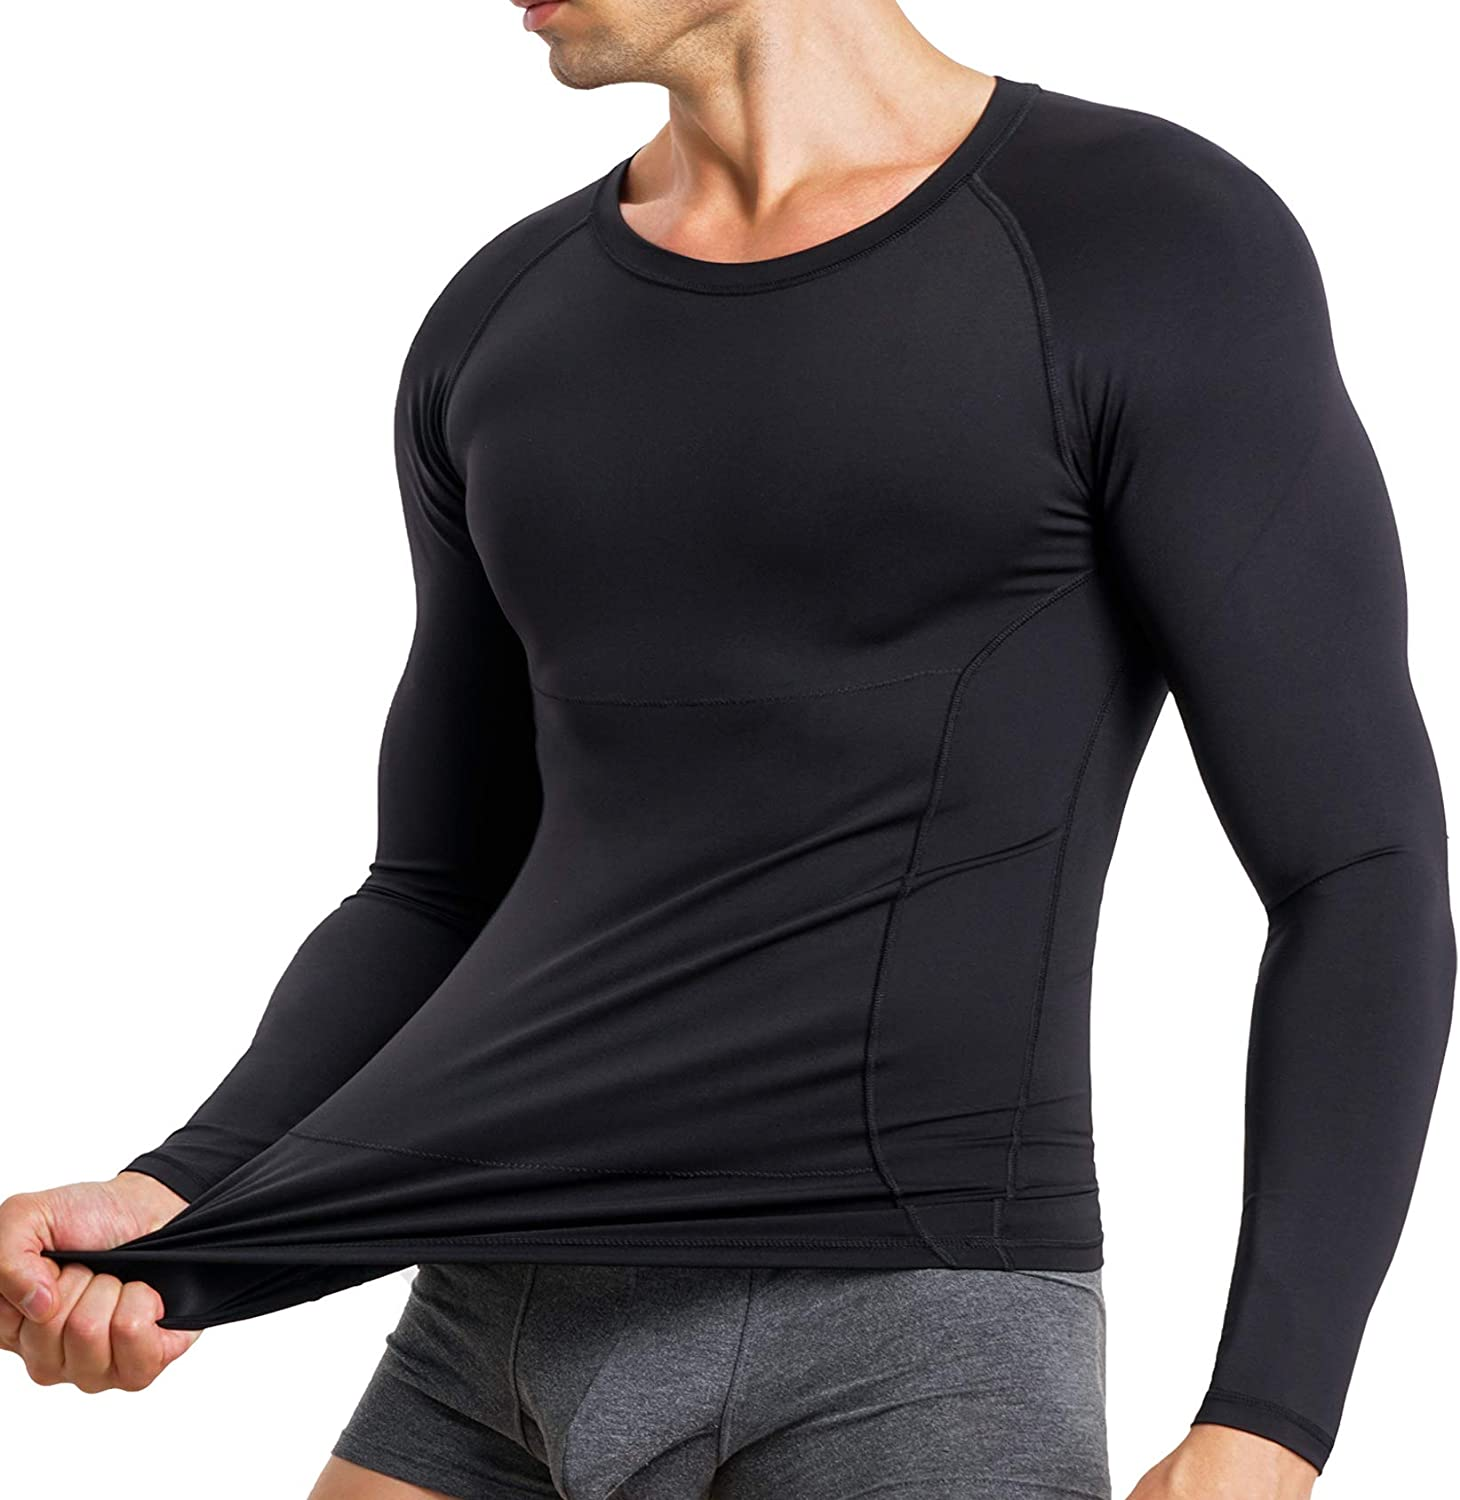 MOLUTAN Mens Compression Shirts Long Sleeves Baselayer Top Body Slimming Shaper Undershirt Shapewear for Arms and Chest